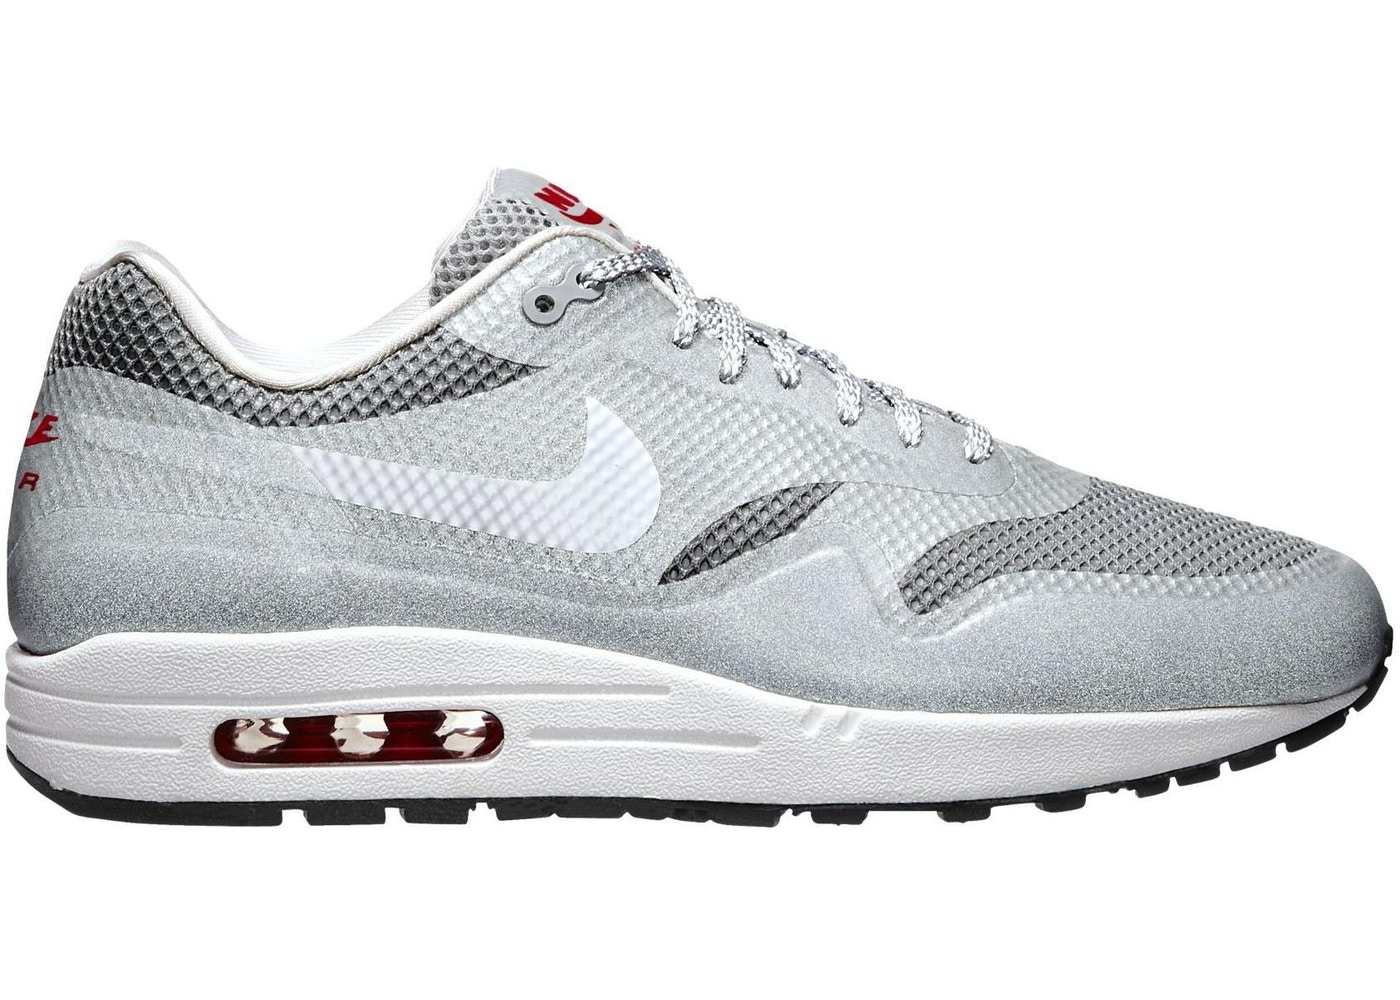 474ef49947 Sell. or Ask. Size: 9.5. View All Bids. Air Max 1 Hyperfuse ...